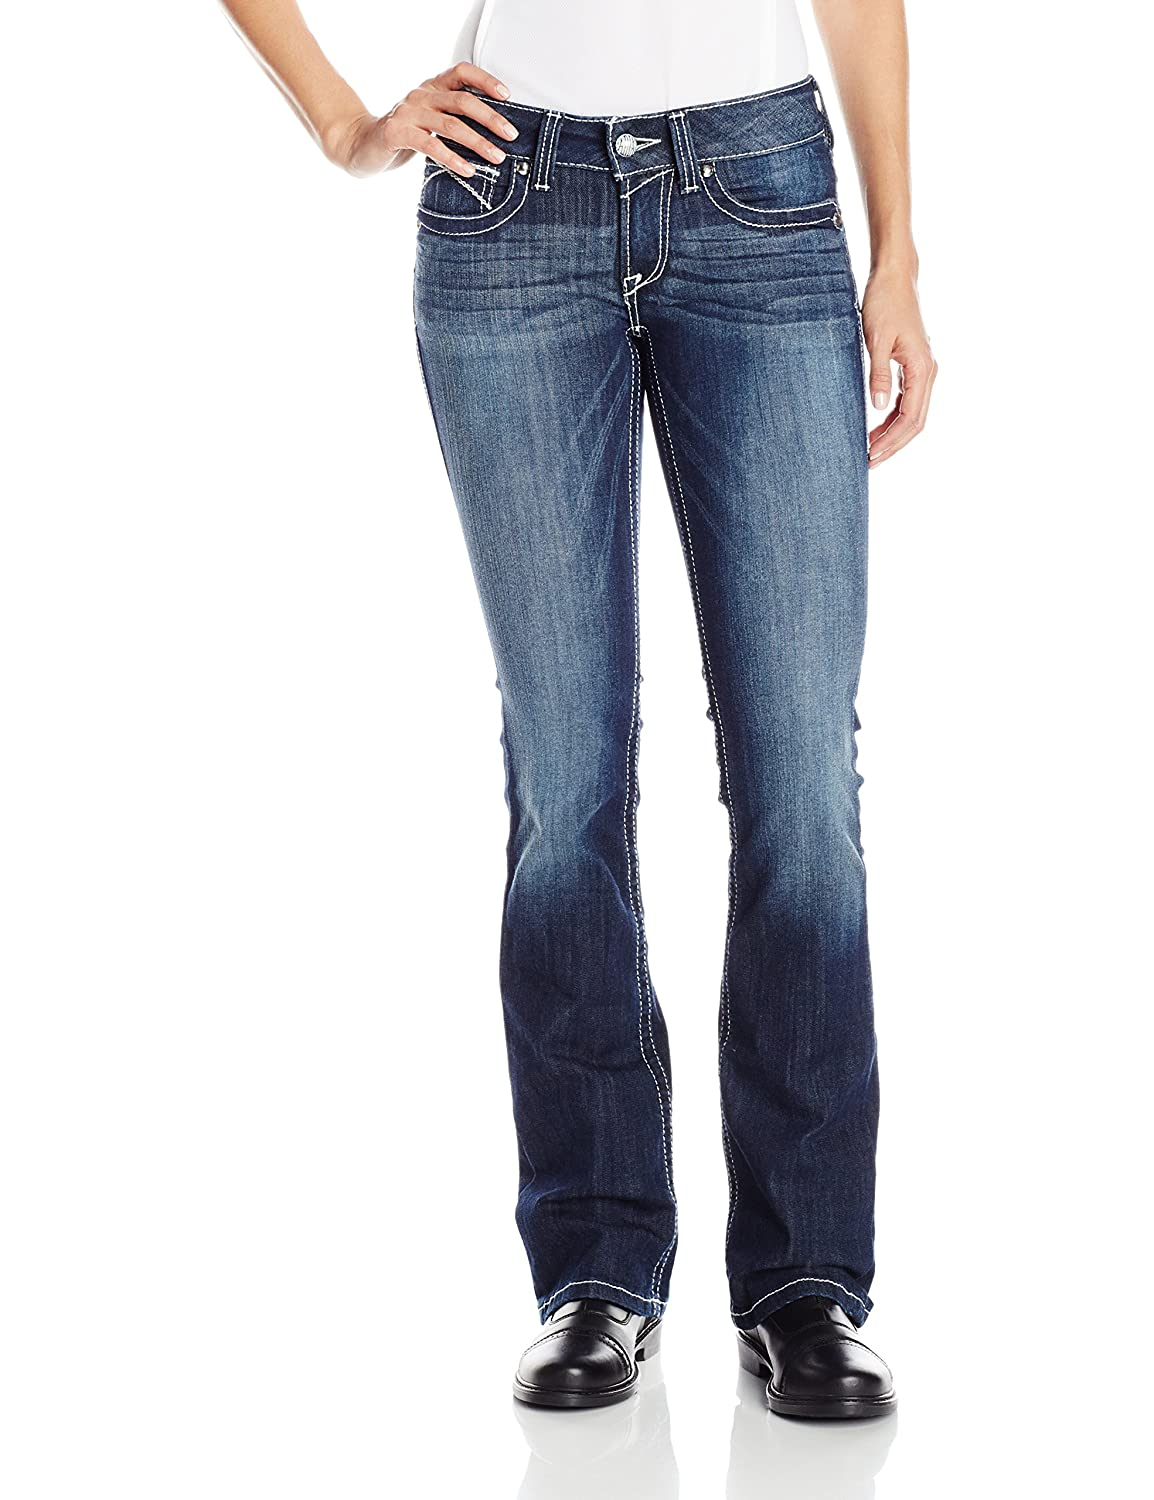 Ariat Women's R.E.A.L. Riding Low Rise Boot Cut Jean Ariat Womens Code 10018351